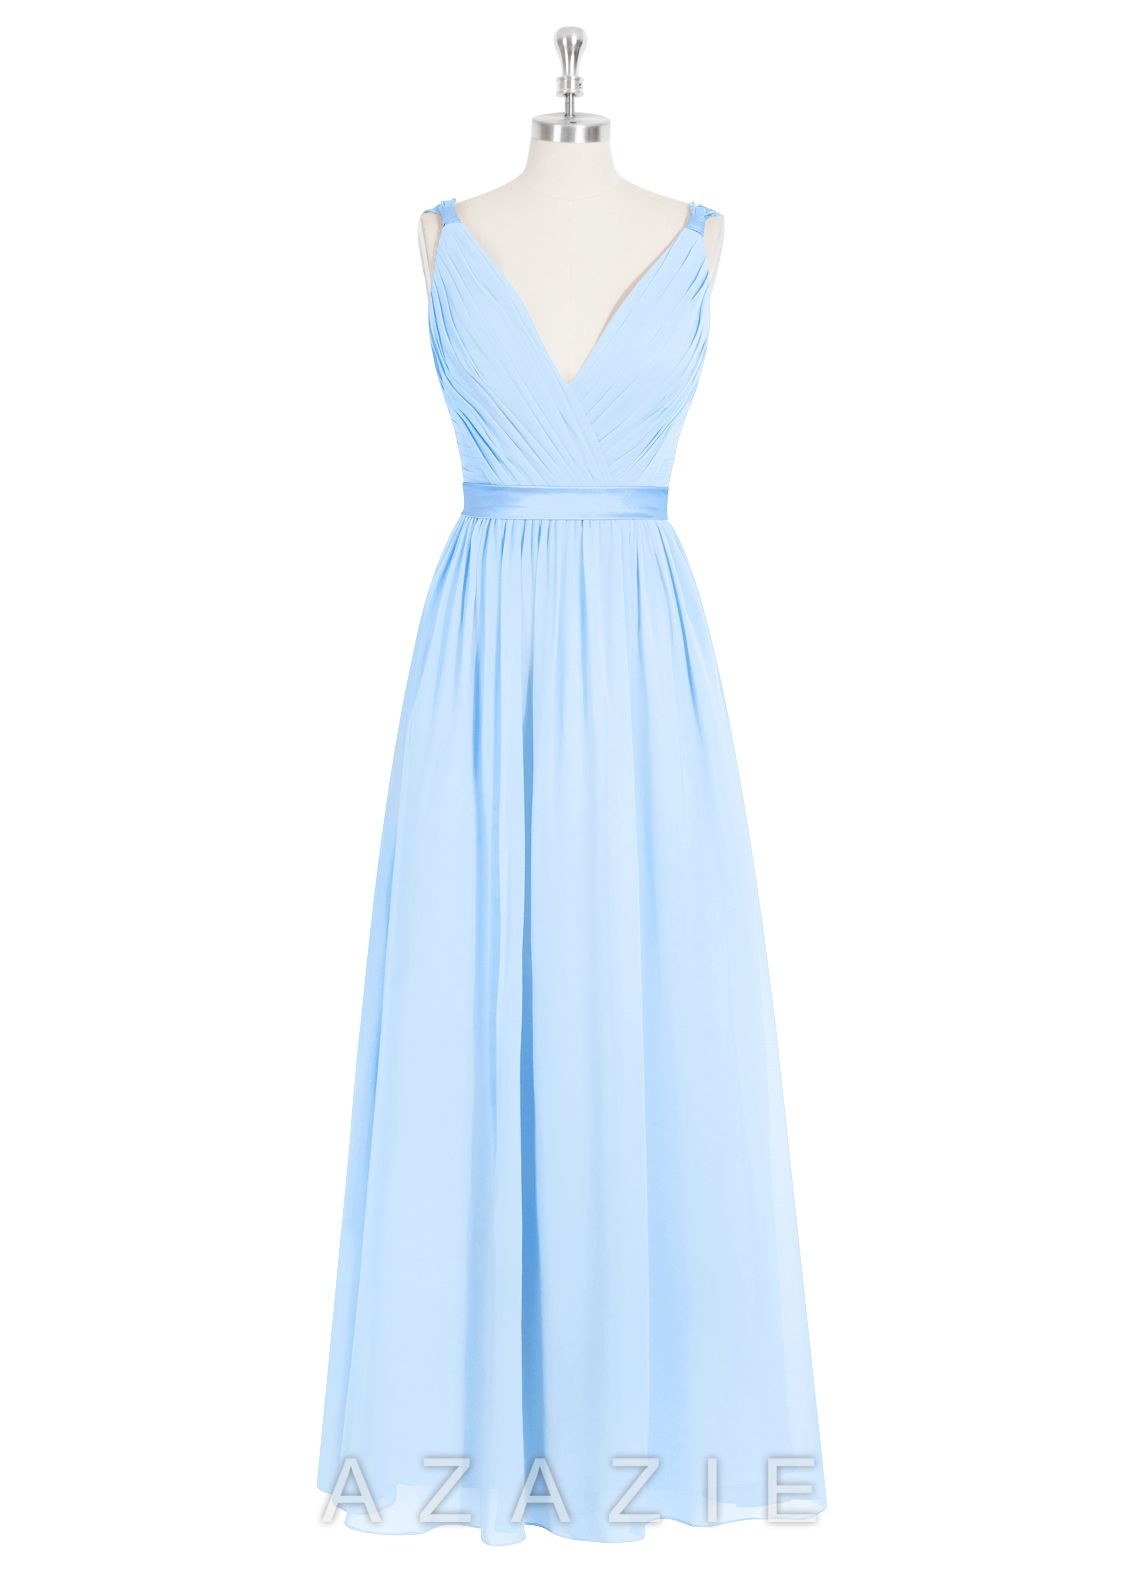 8e17efe2e0 Shop Azazie Bridesmaid Dress - Leanna in Chiffon. Find the perfect  made-to-order bridesmaid dresses for your bridal party in your favorite  color